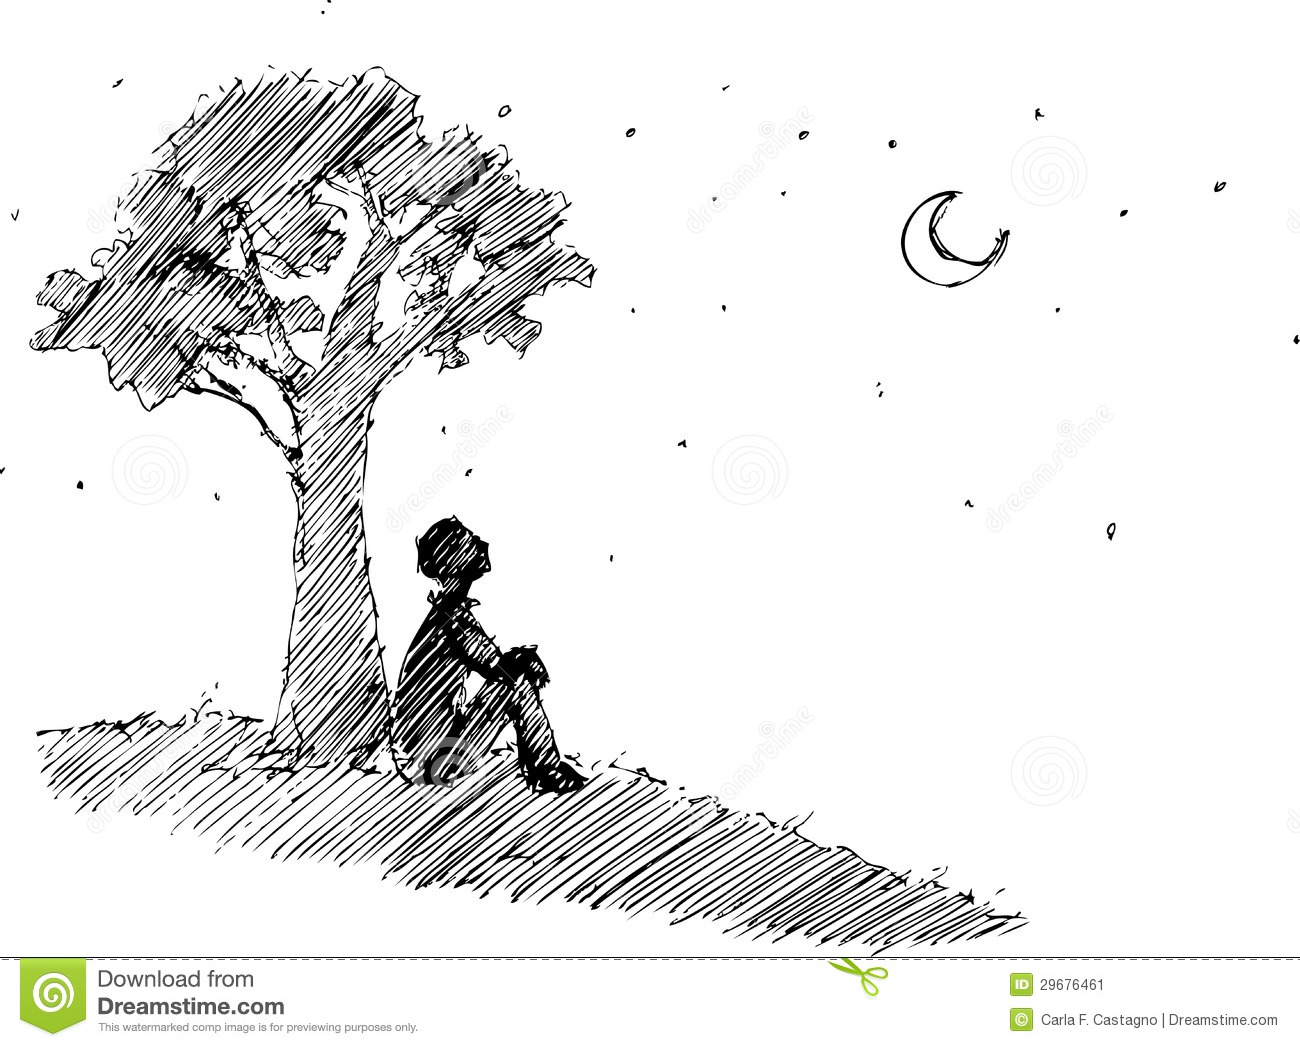 Romantic black and white sketchy illustration man sitting under a tree looking at the moon